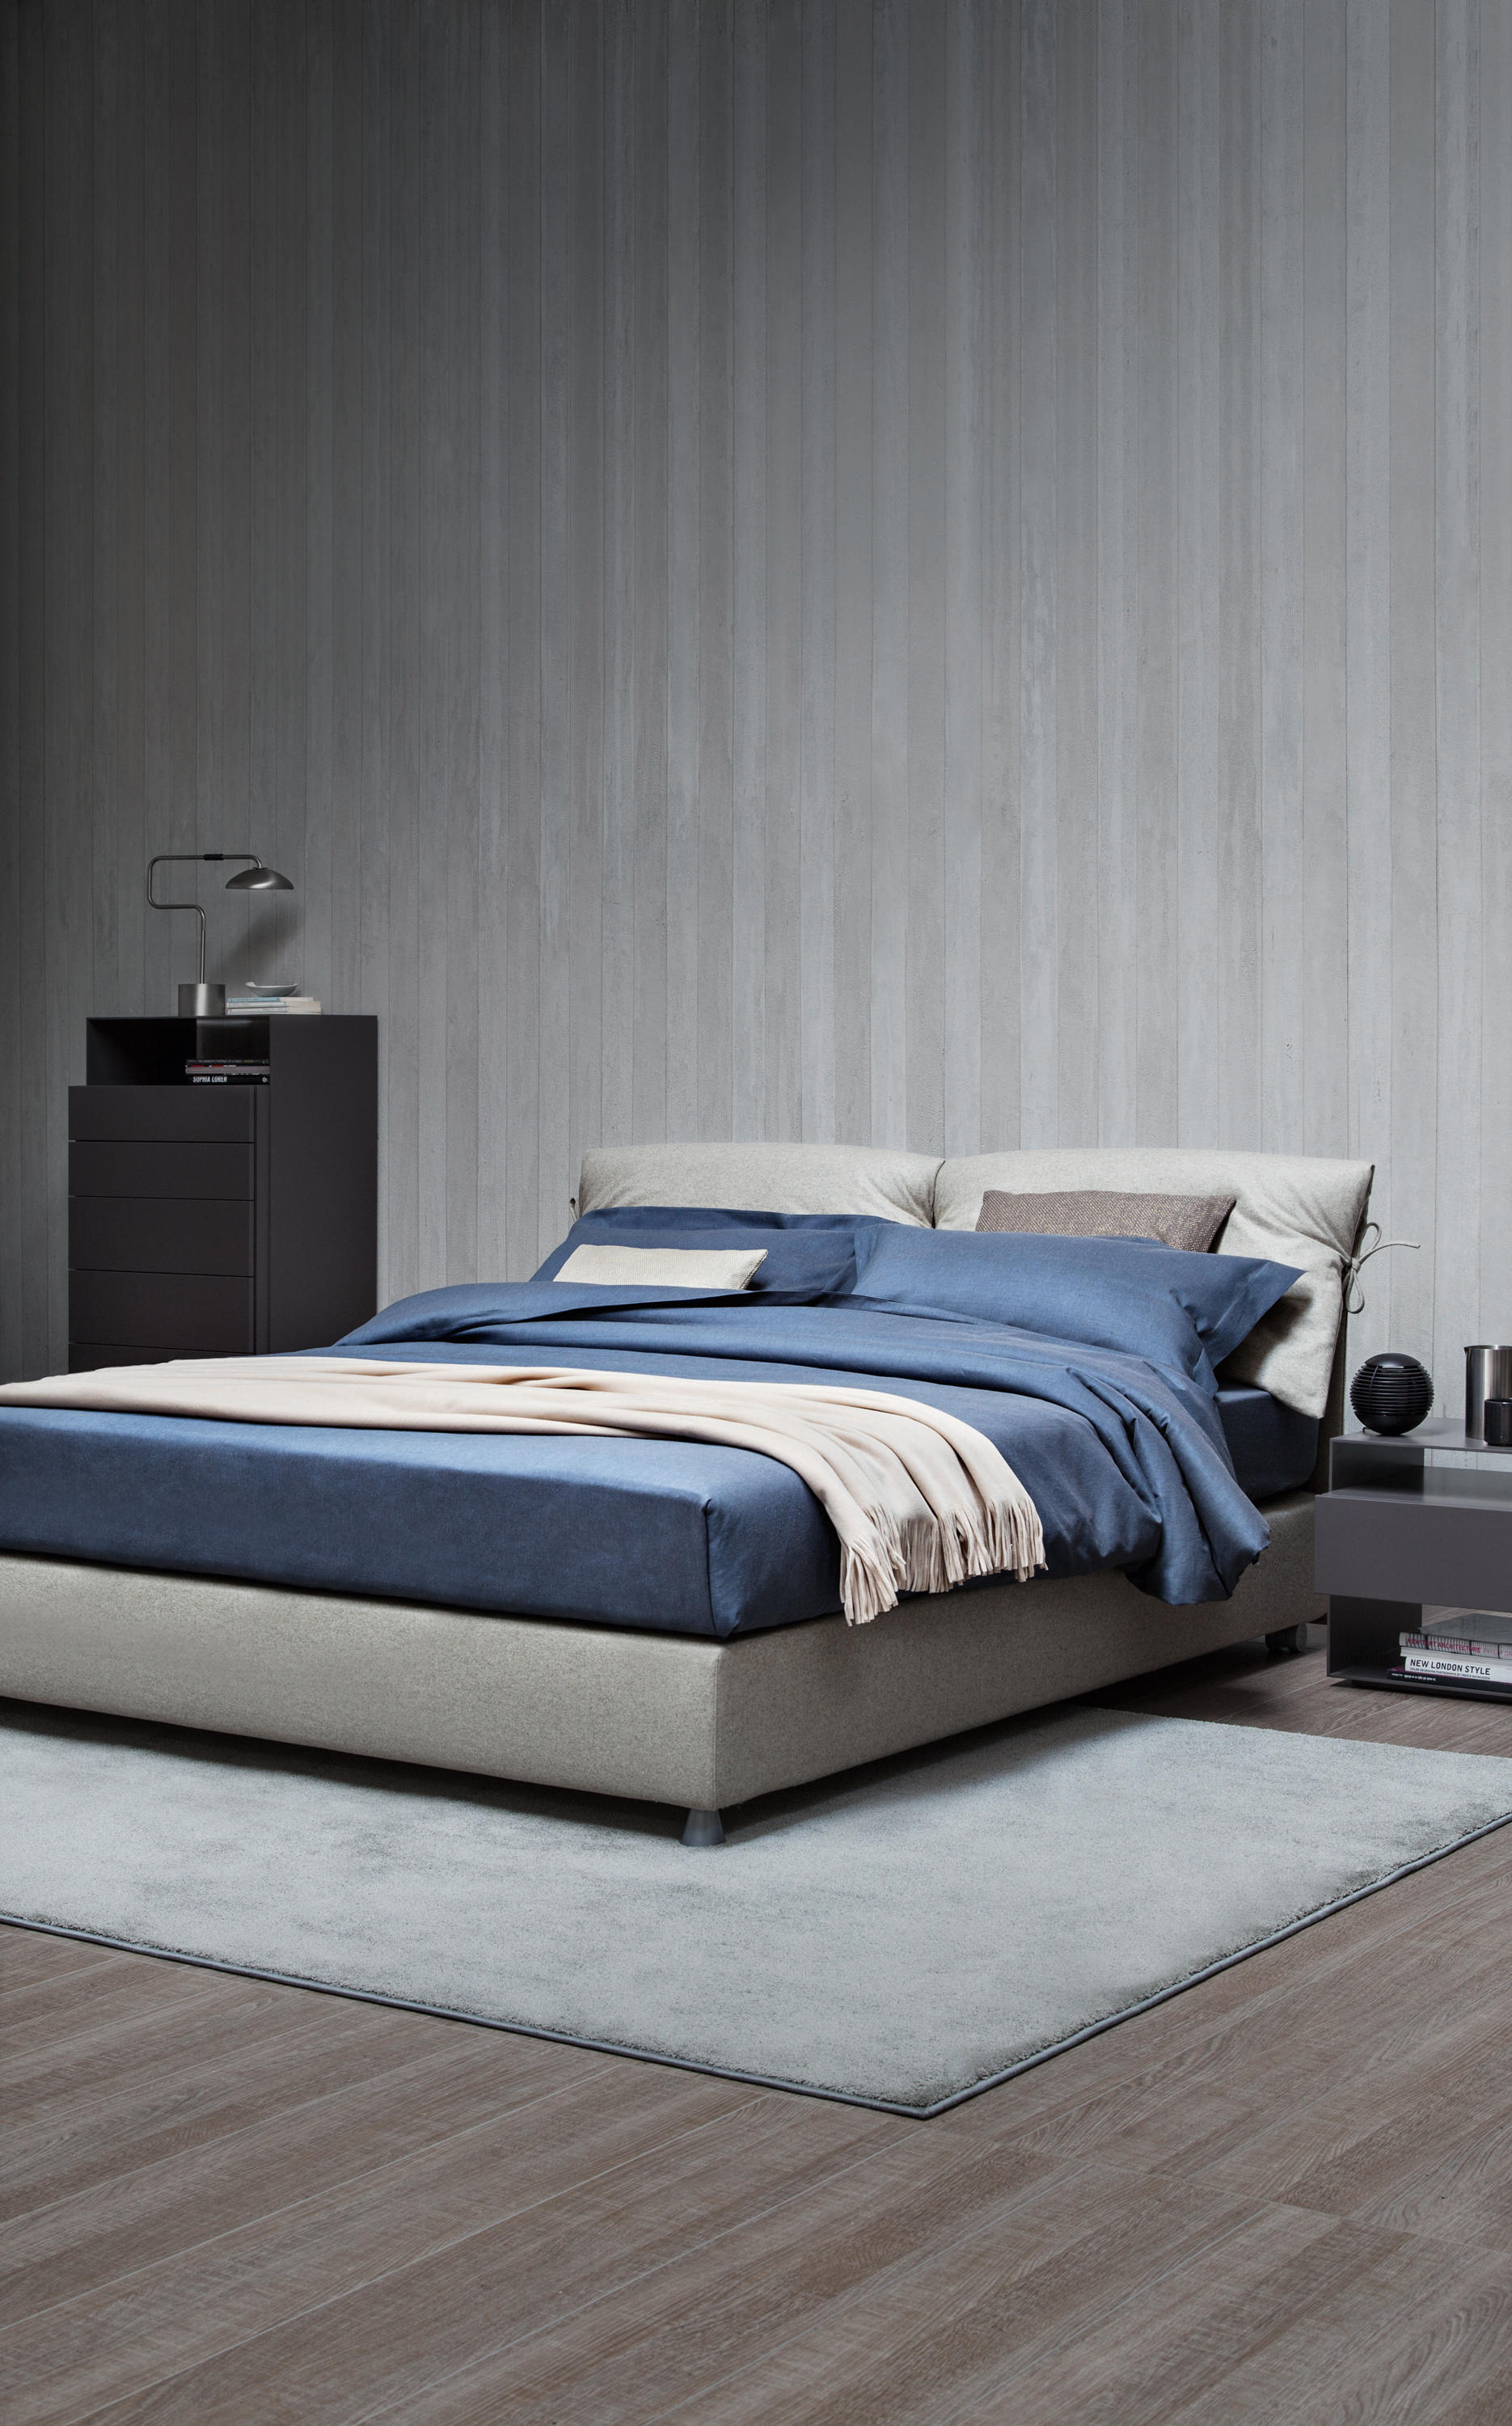 Nathalie bed double beds from flou architonic - Cambiare rivestimento letto flou nathalie ...